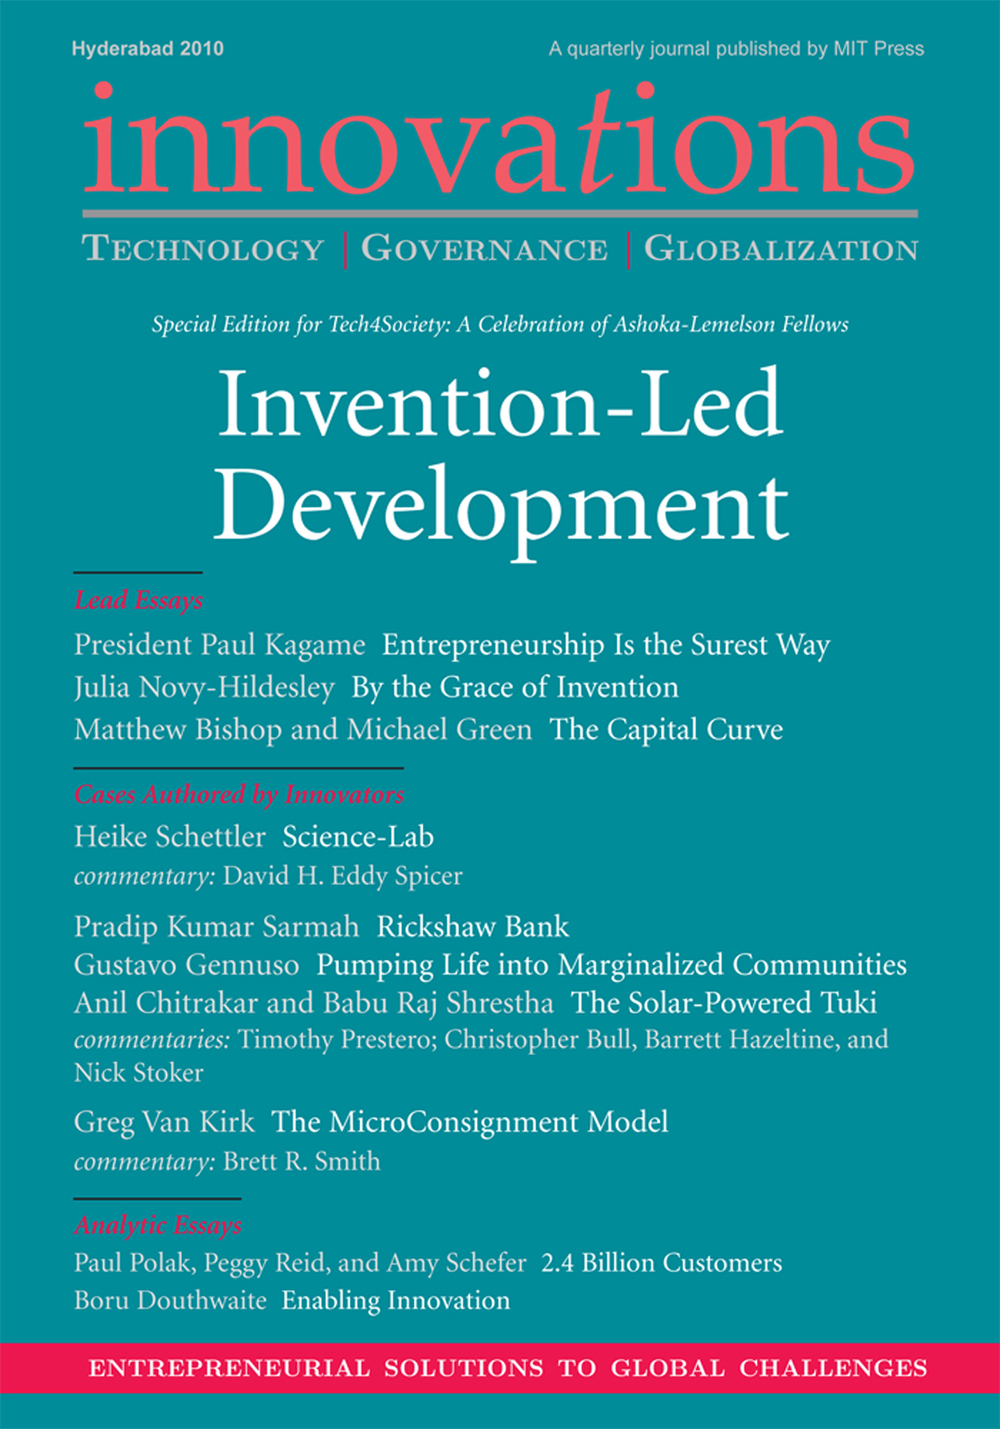 Innovations Paper Cover.jpg